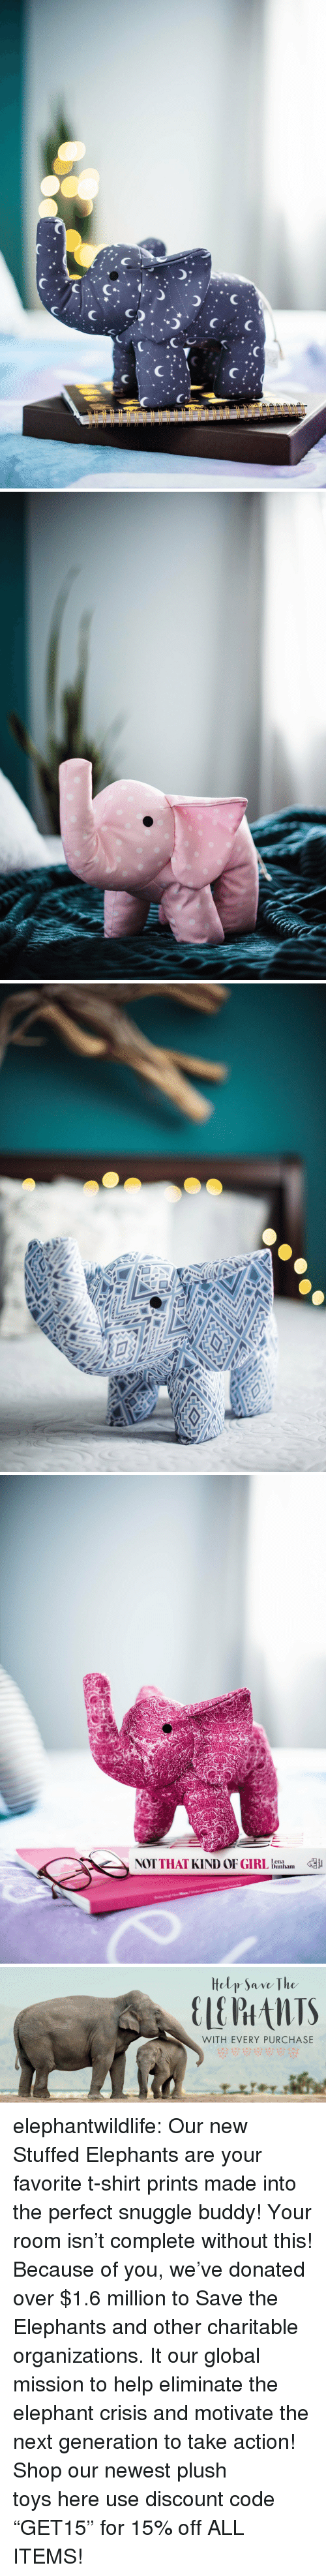 """Tumblr, Blog, and Elephant: Lena  NT THAT KIND OF GIRL Dunham   Hely Save The  WITH EVERY PURCHASE elephantwildlife:   Our new Stuffed Elephants are your favorite t-shirt prints made into the perfect snuggle buddy! Your room isn't complete without this!   Because of you, we've donated over $1.6 million to Save the Elephants and other charitable organizations. It our global mission to help eliminate the elephant crisis and motivate the next generation to take action! Shop our newest plush toyshere   use discount code """"GET15"""" for 15% off ALL ITEMS!"""